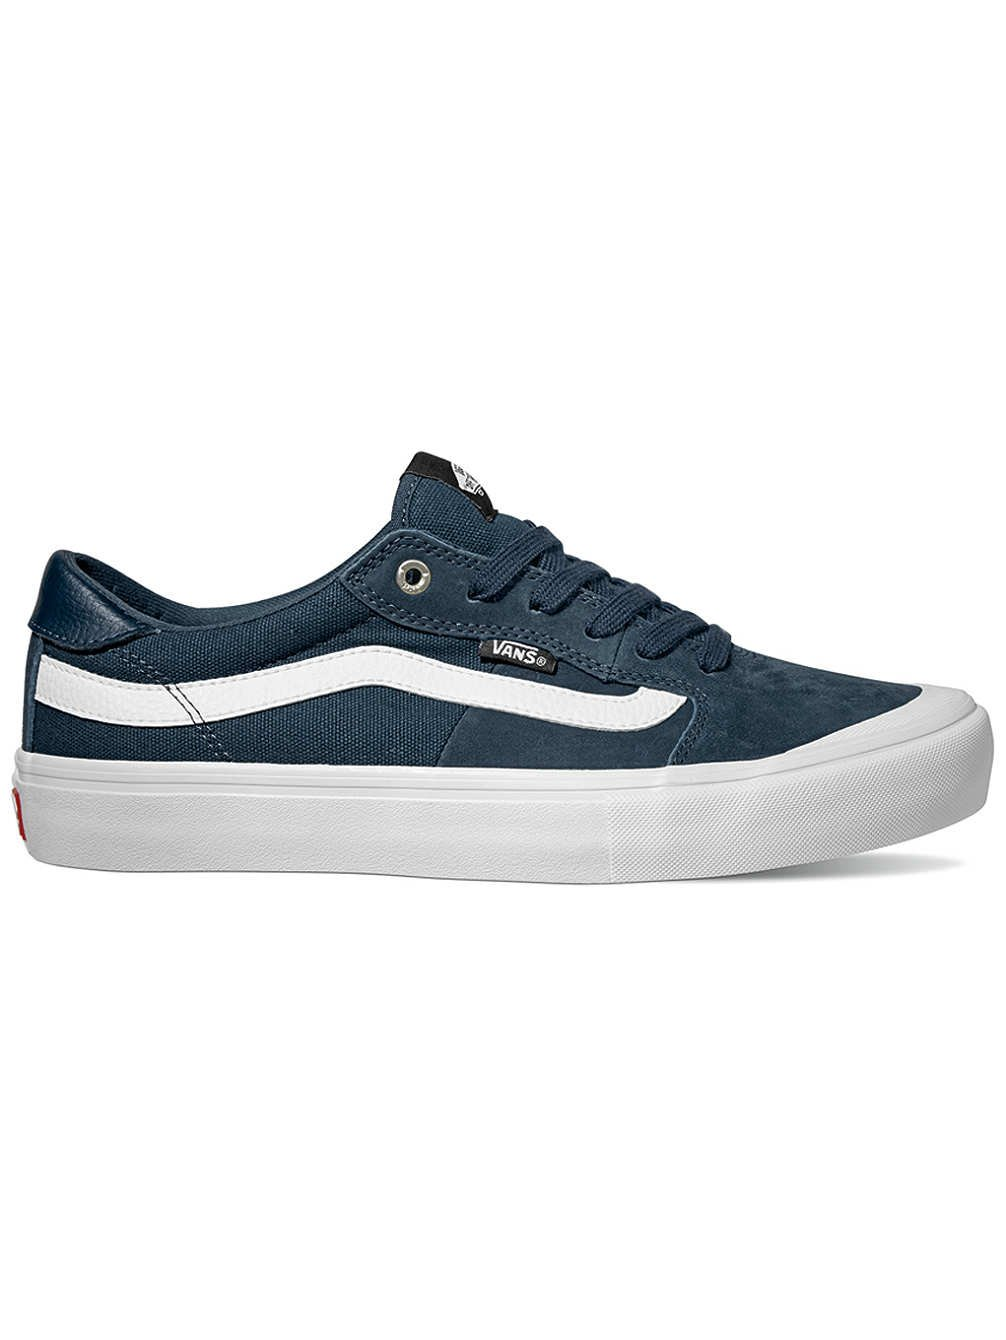 9588a56a716 Galleon - Vans Style 112 Pro Skate Shoes (9.5 D(M) US Mens